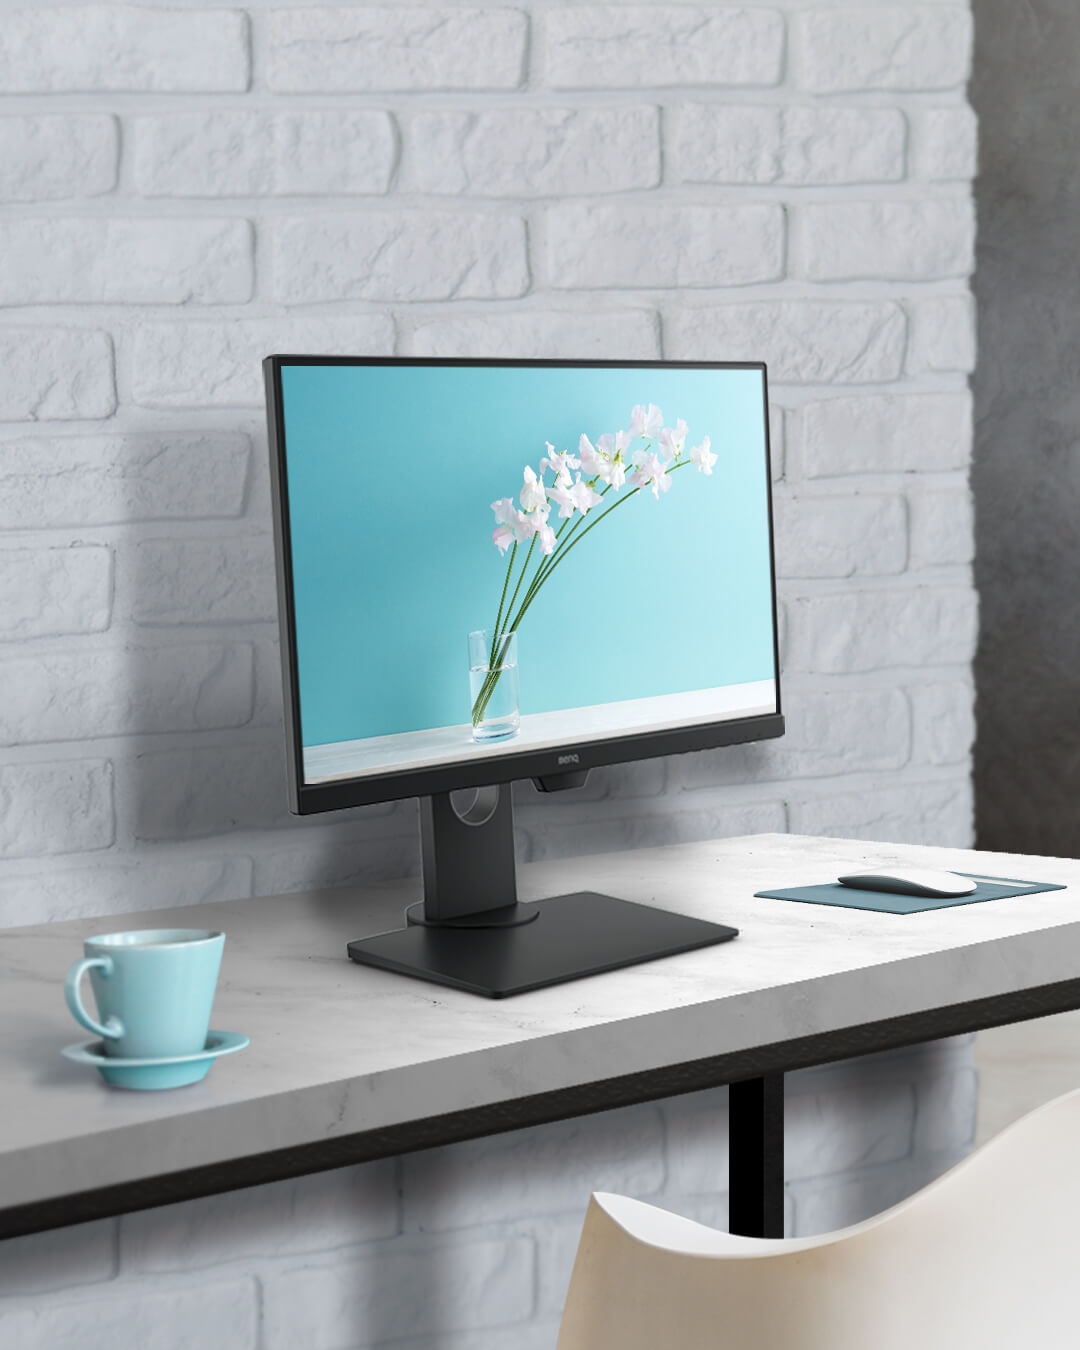 benq eyecare stylish monitor provides streamlined productivity and simplified lifestyle